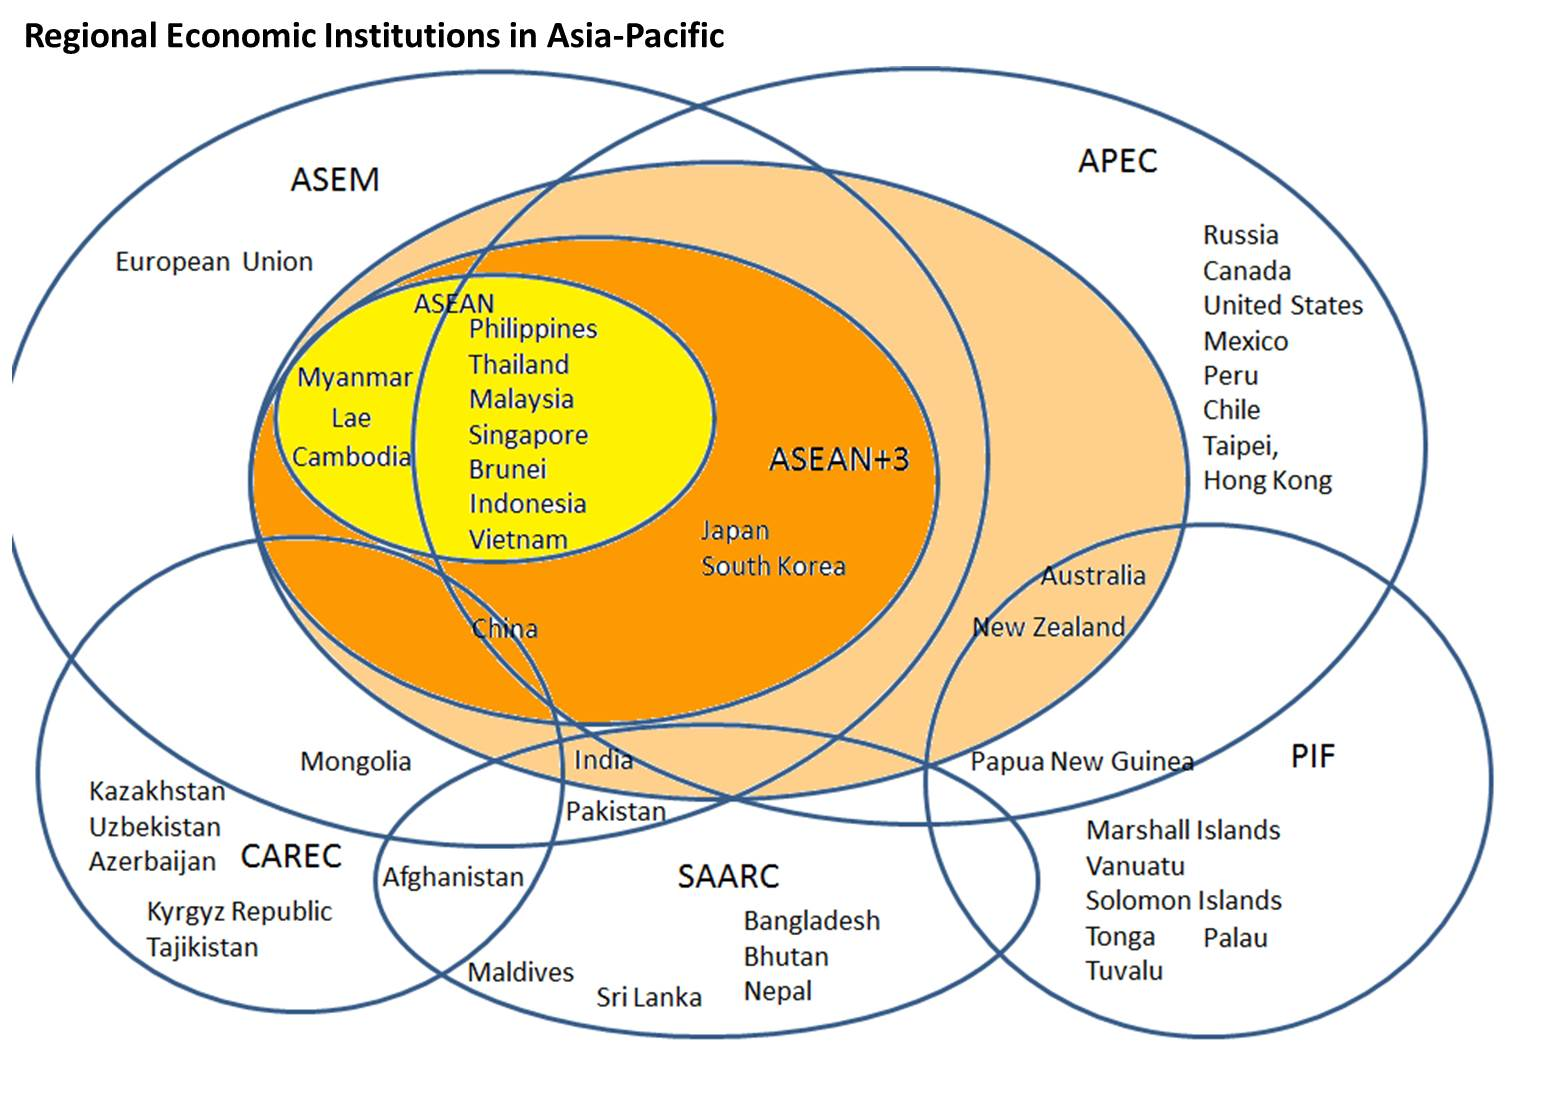 Fileregional economic institutions in the asia pacific diagram fileregional economic institutions in the asia pacific diagramg pooptronica